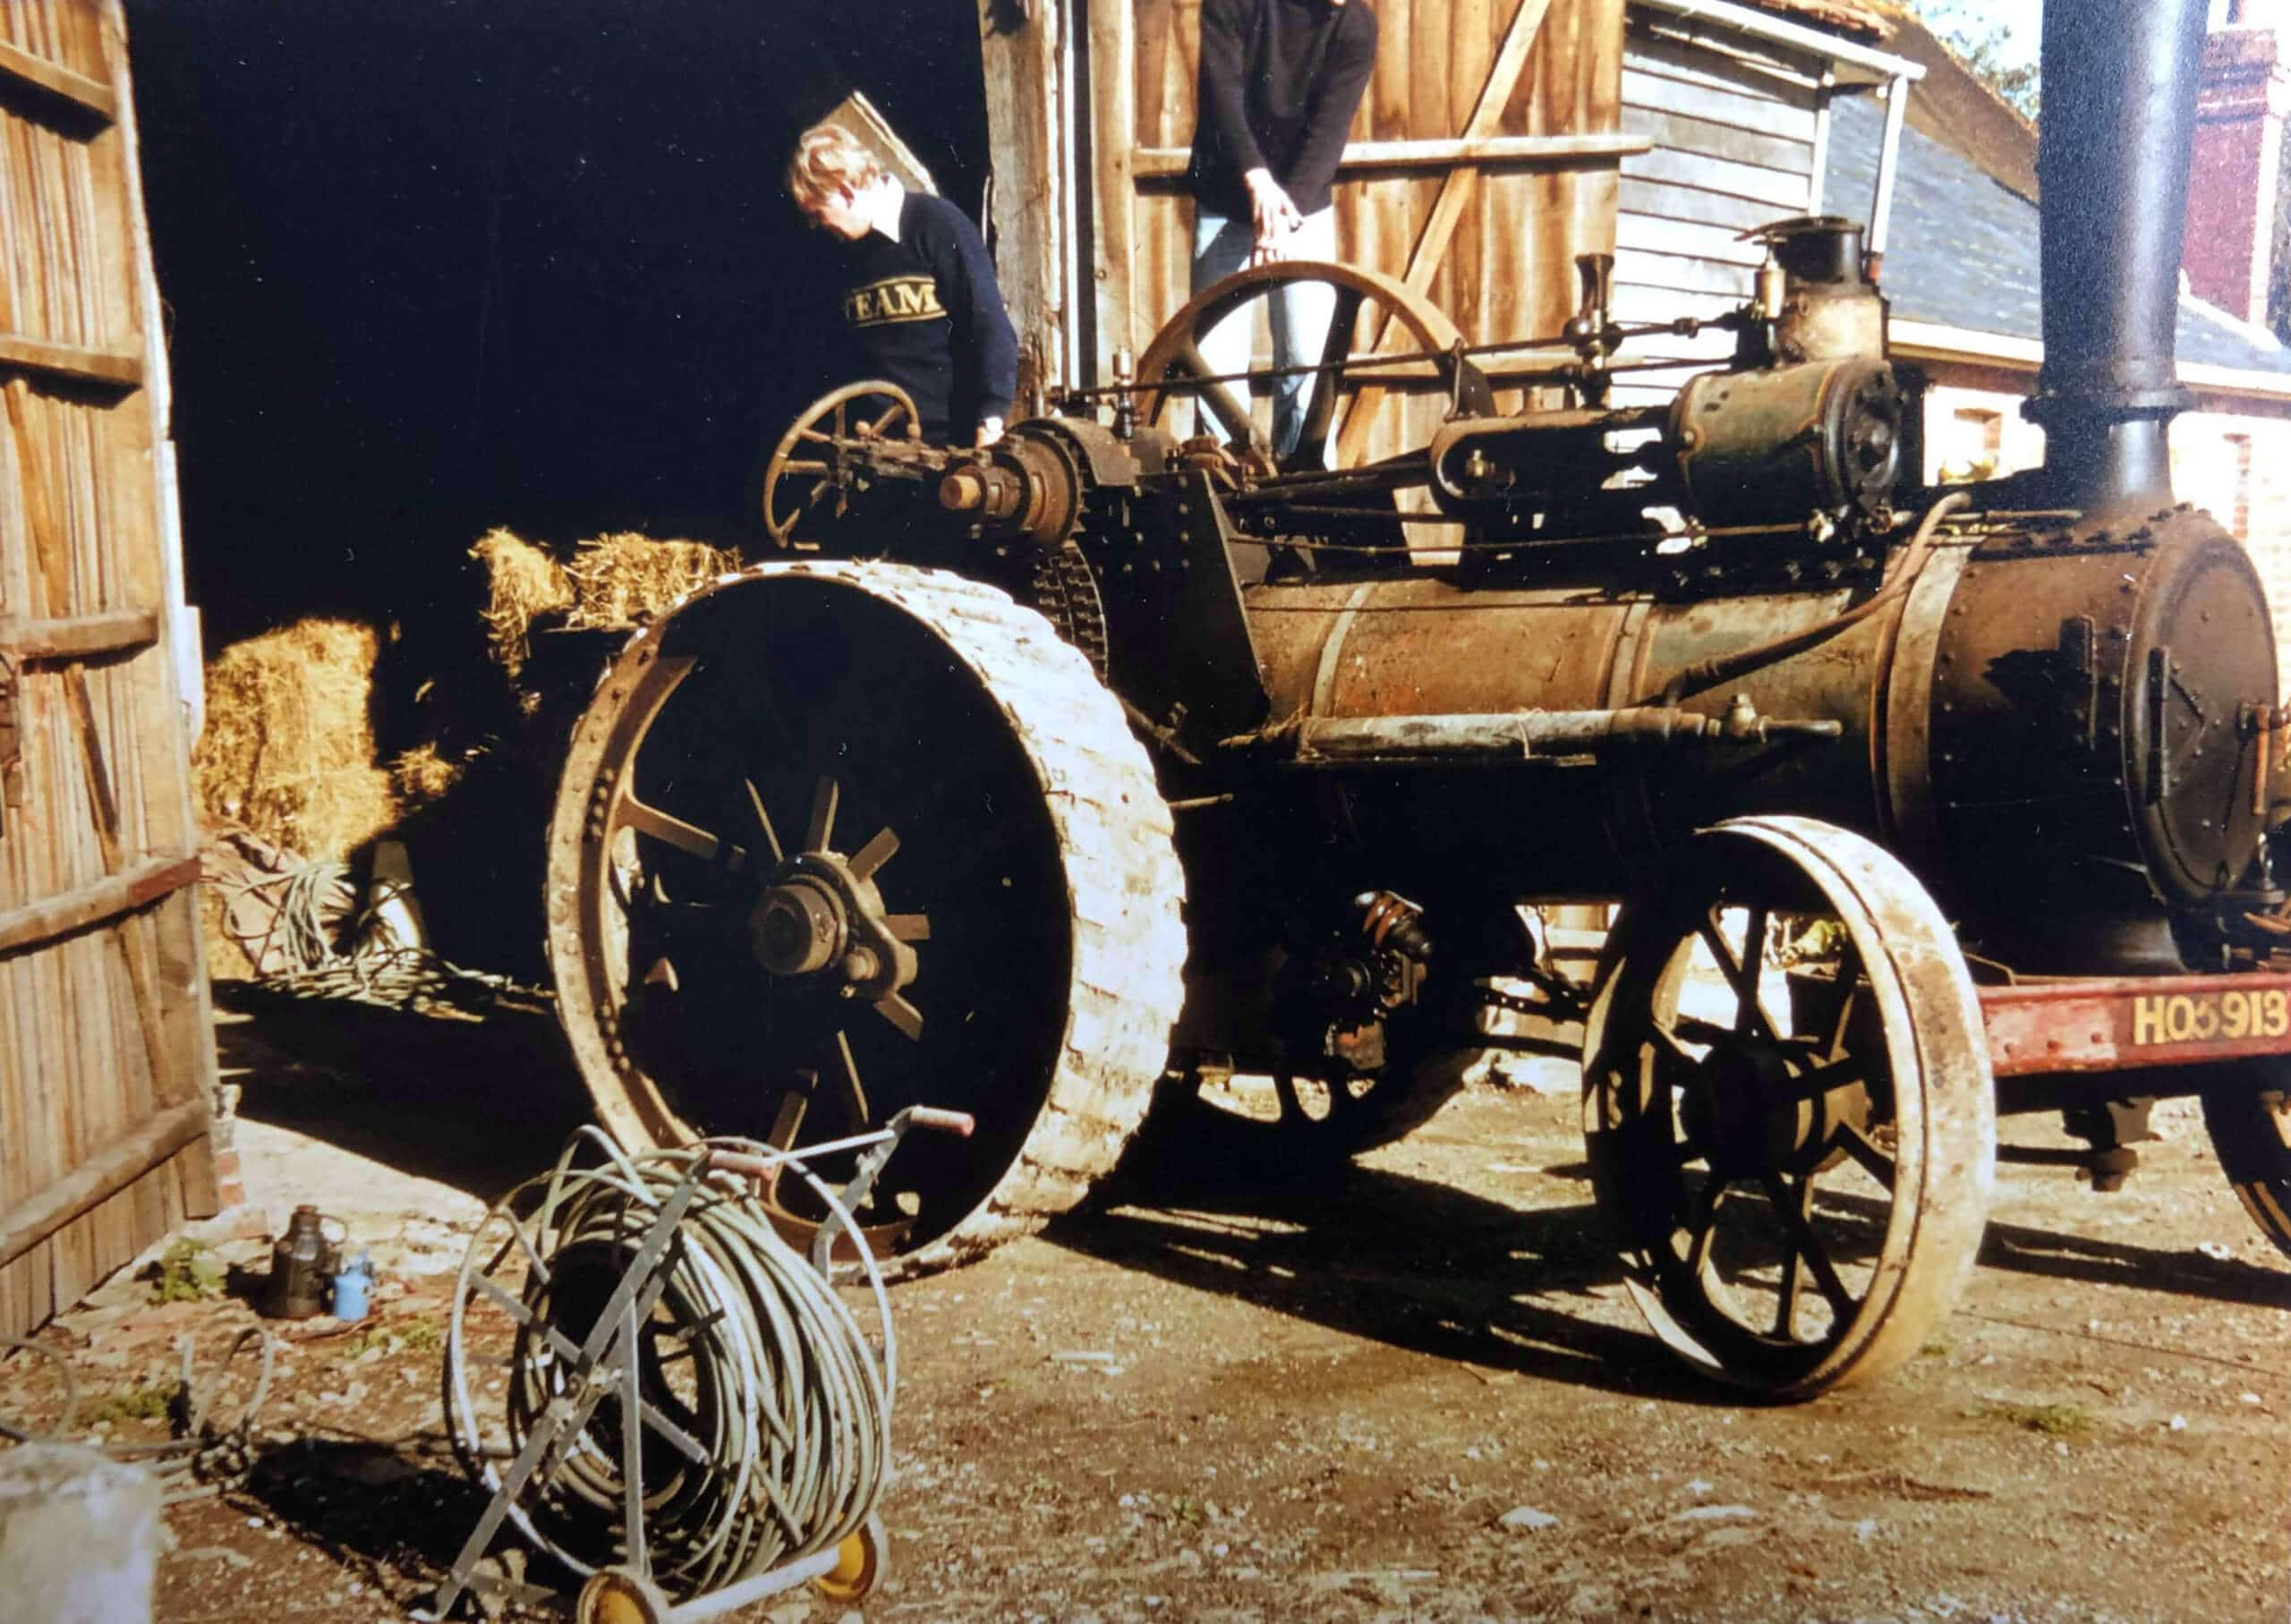 Marshall Traction Engine Victoria Empress of India no.14242 emerges from a barn in 1980 when Peter Fagg purchased her